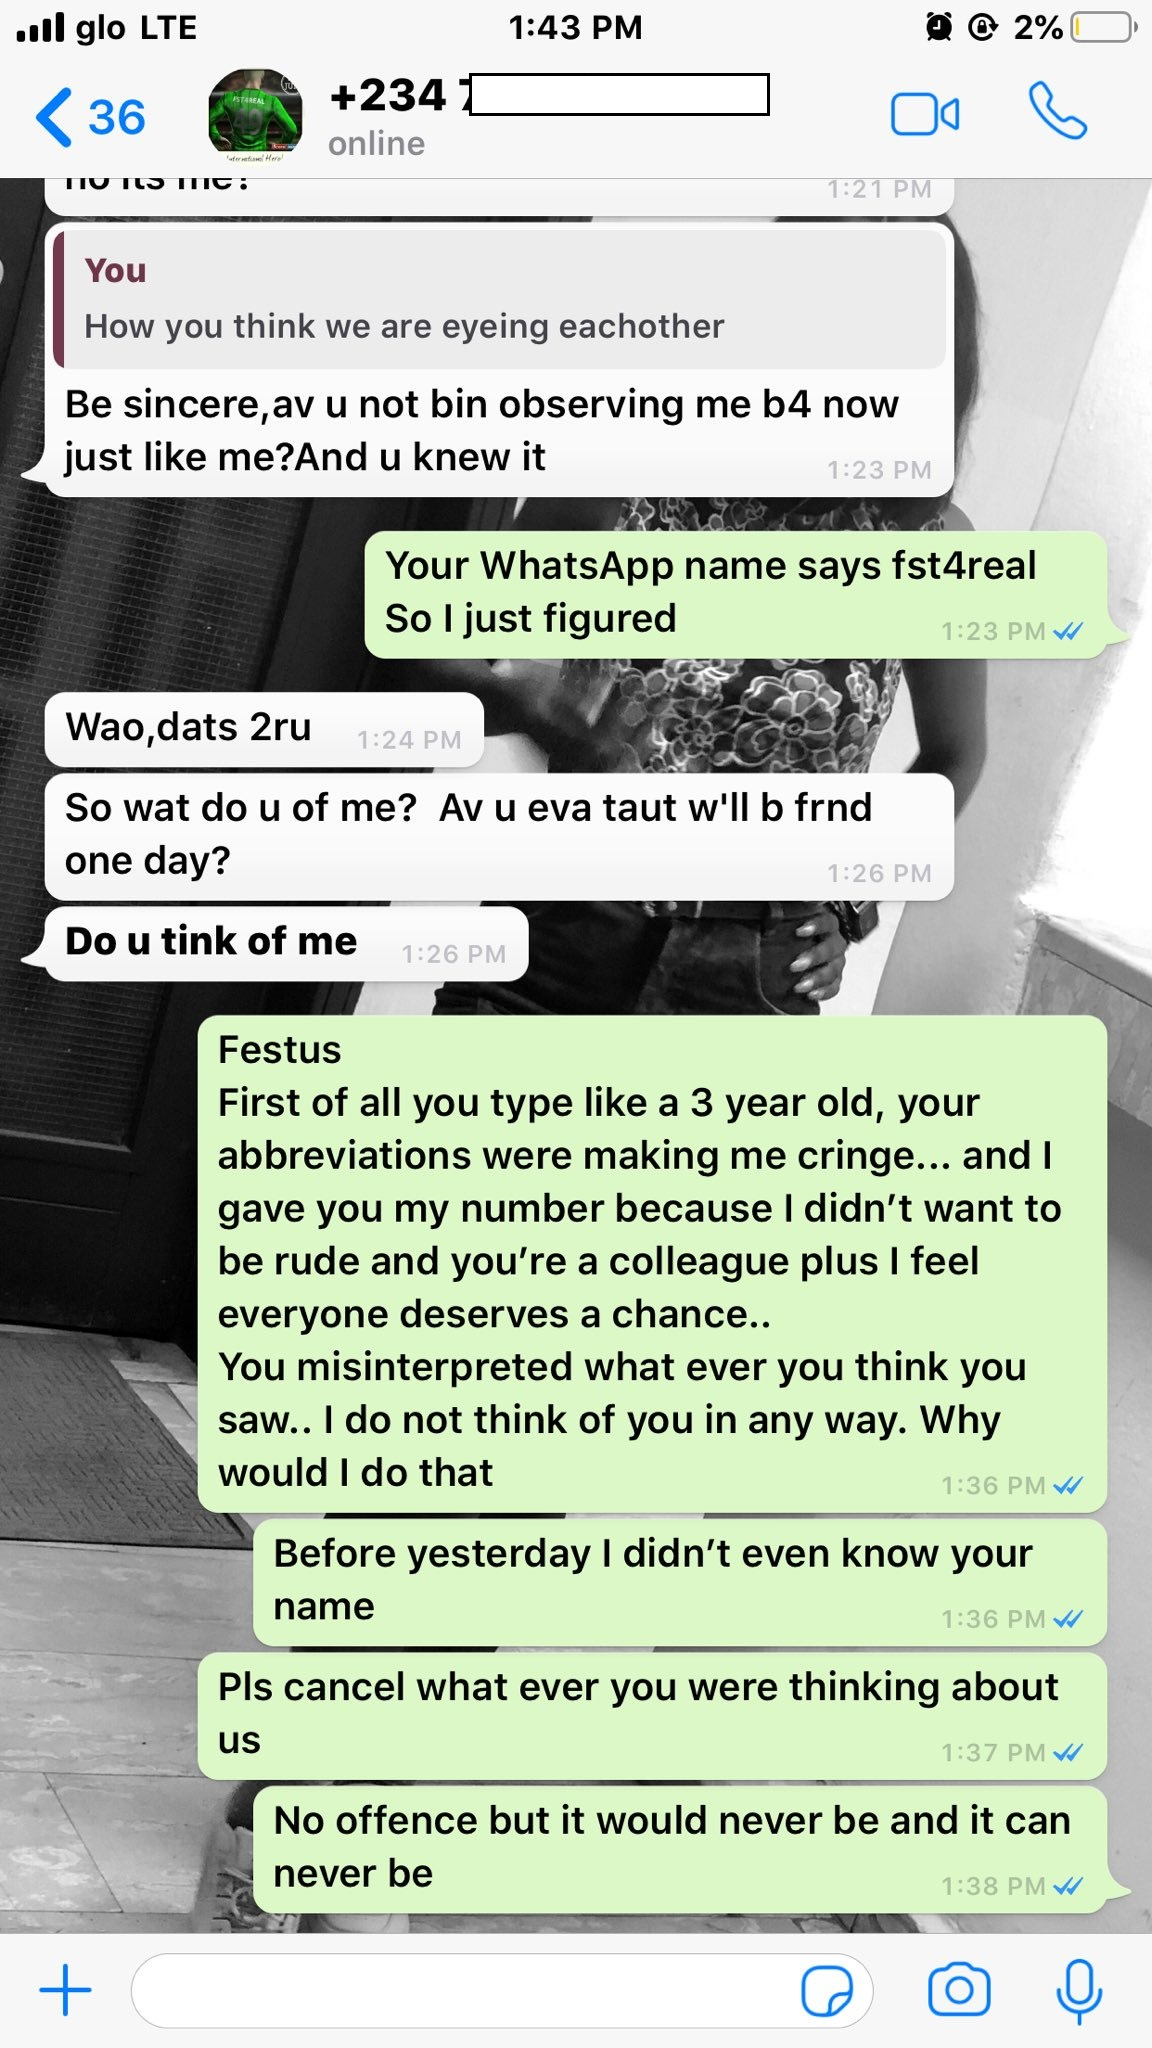 A Nigerian Lady known as Asake has shared screenshots of the conversation with a guy who apparently, has feelings for her.